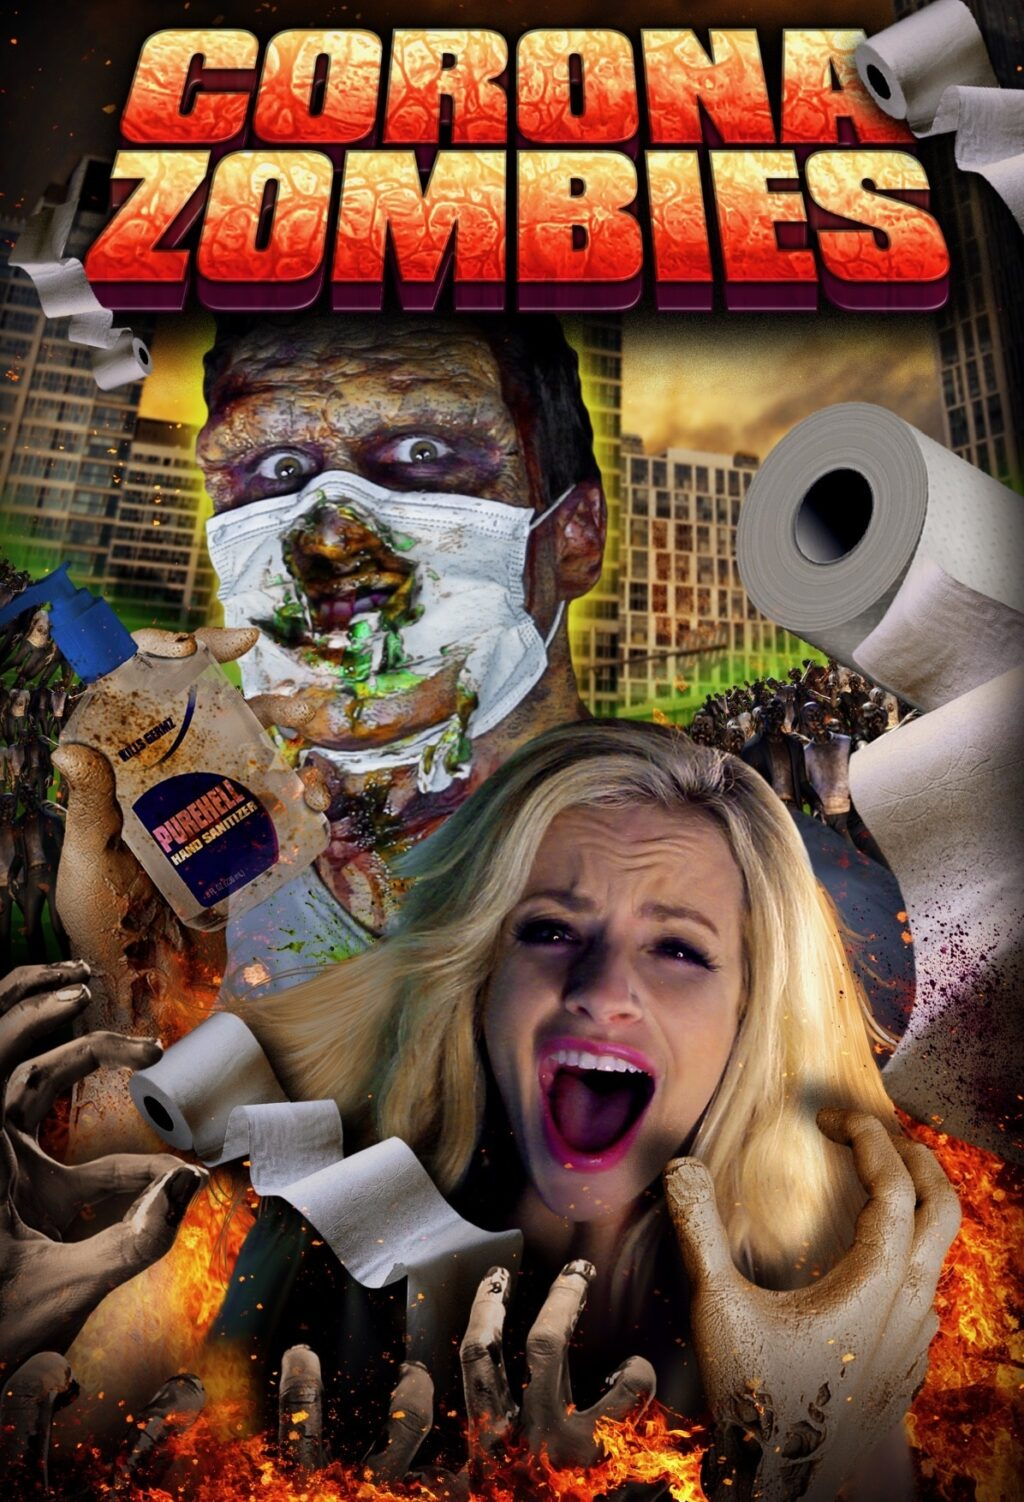 Corona Zombies Poster 2 1024x1502 - Teaser Trailer: Full Moon's CORONA ZOMBIES Wipes You Out On 4/10